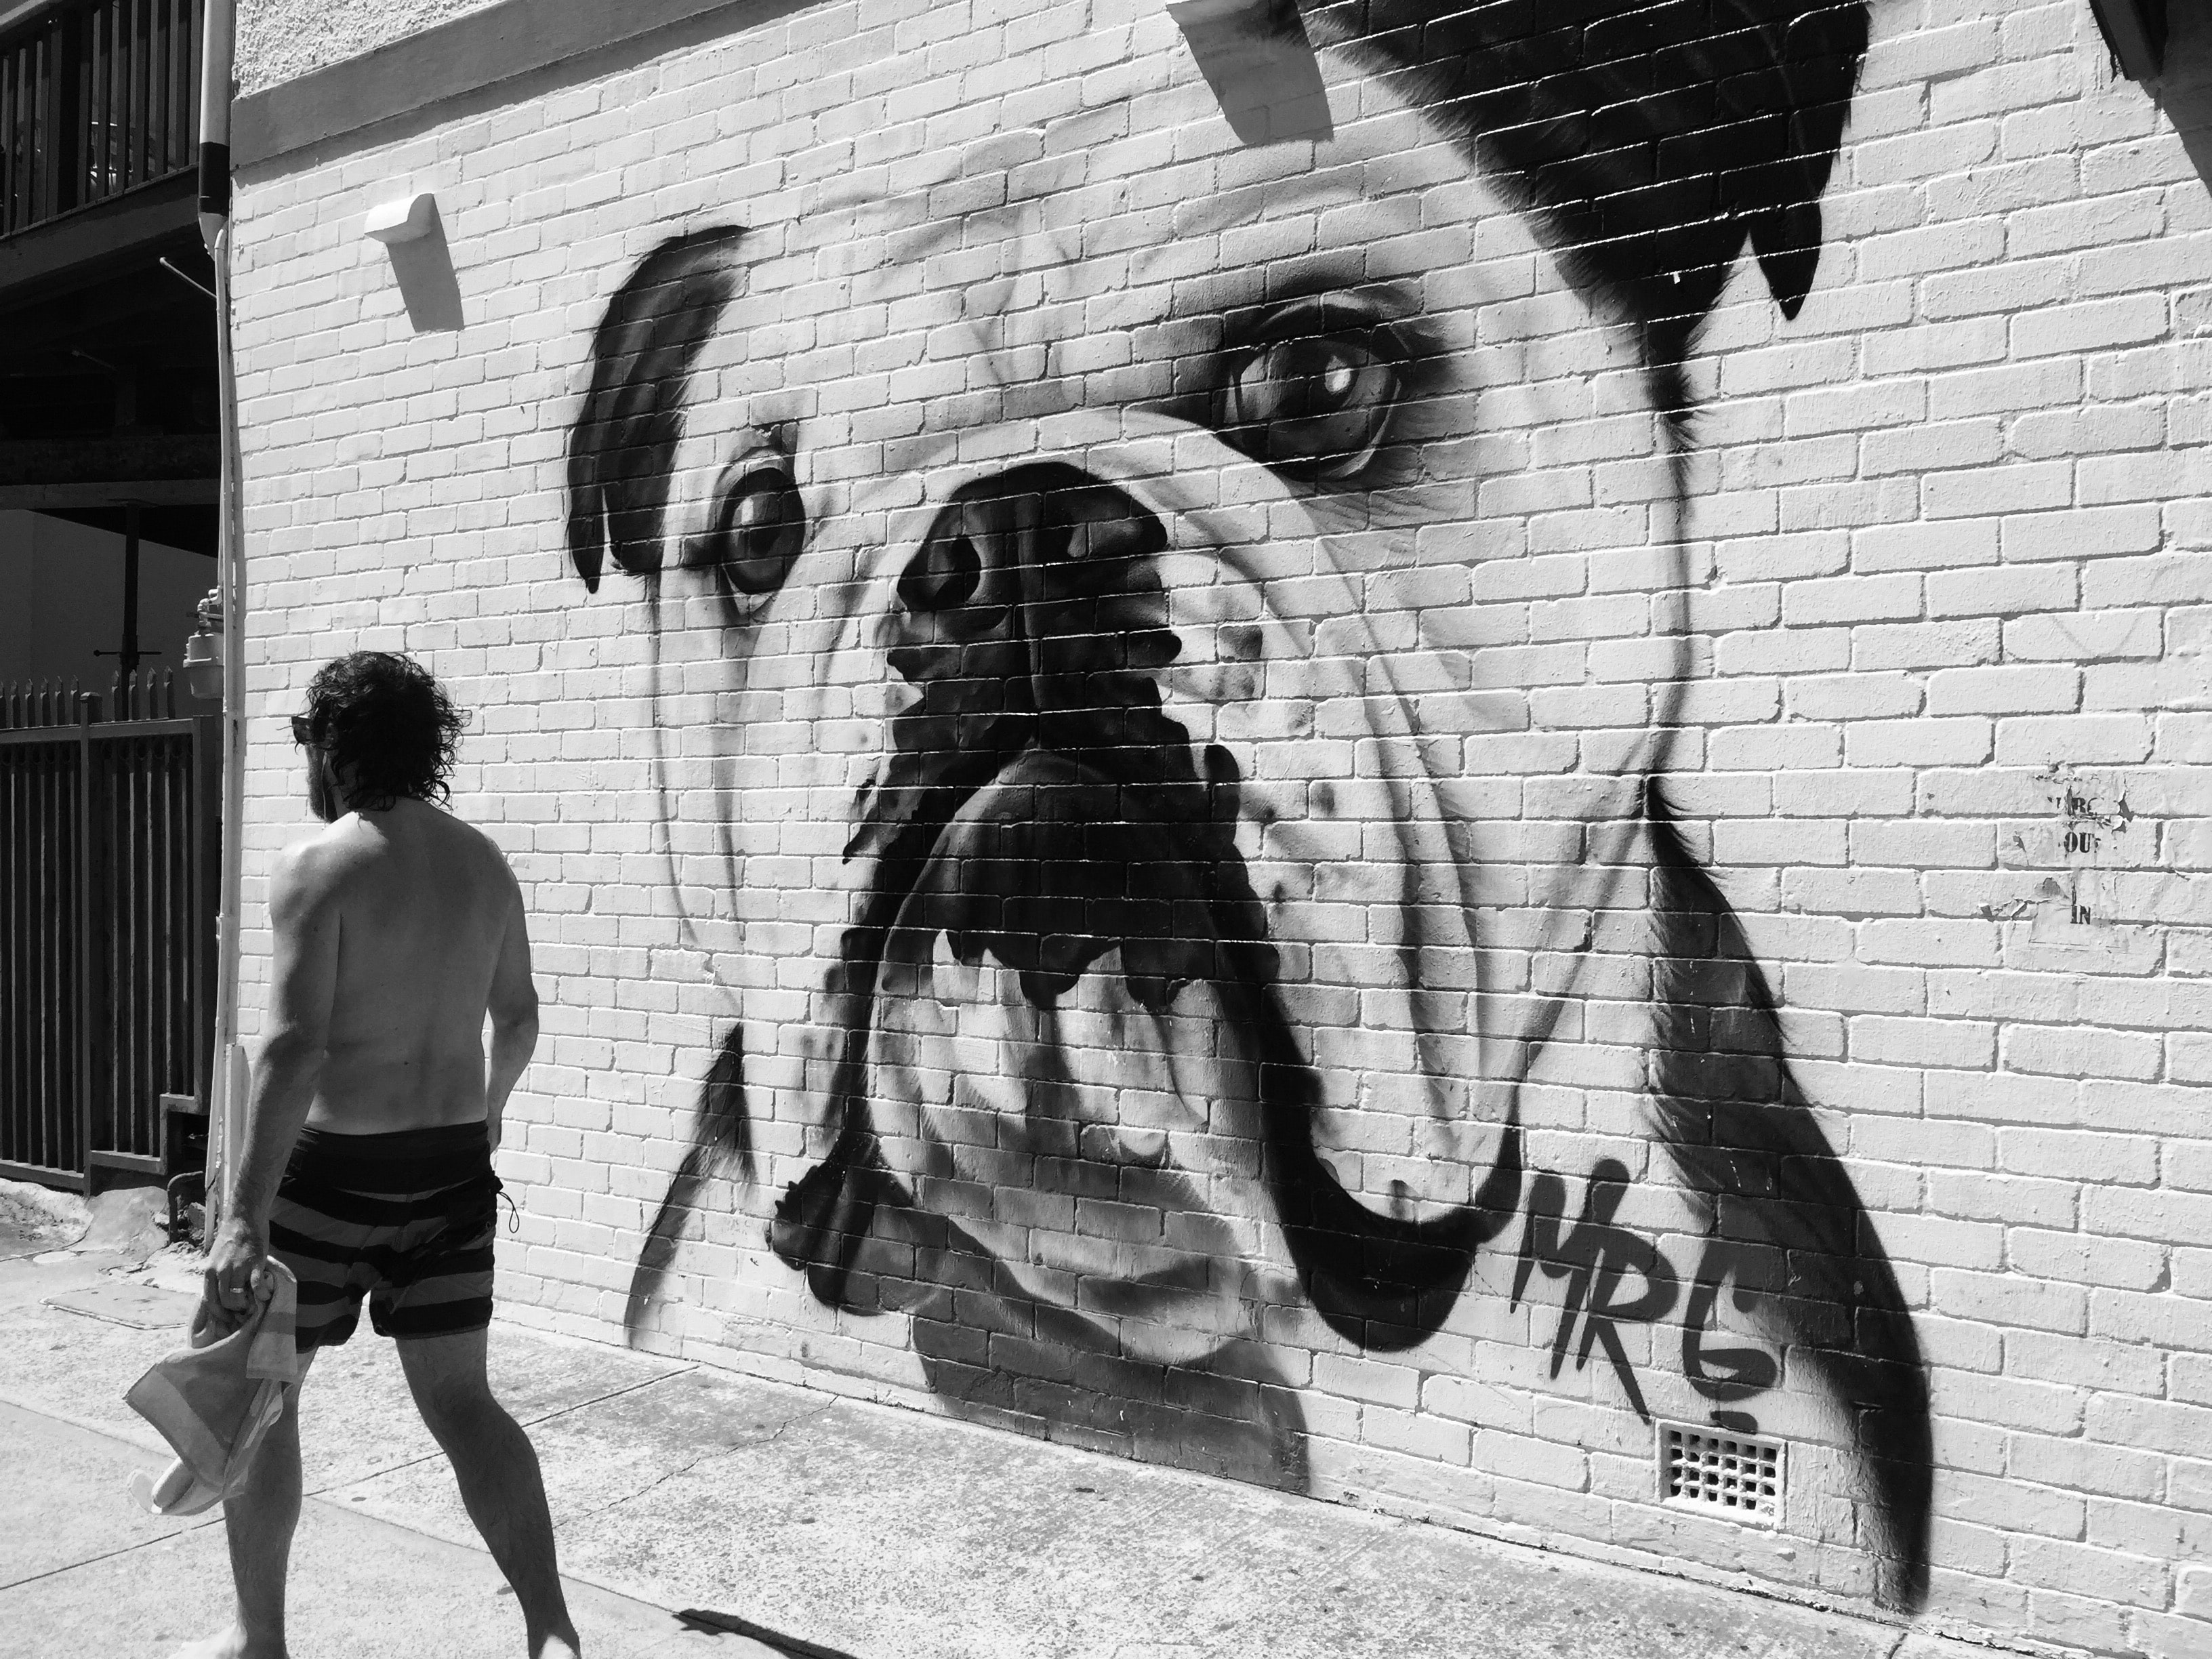 A white bulldog painted on a brick wall.